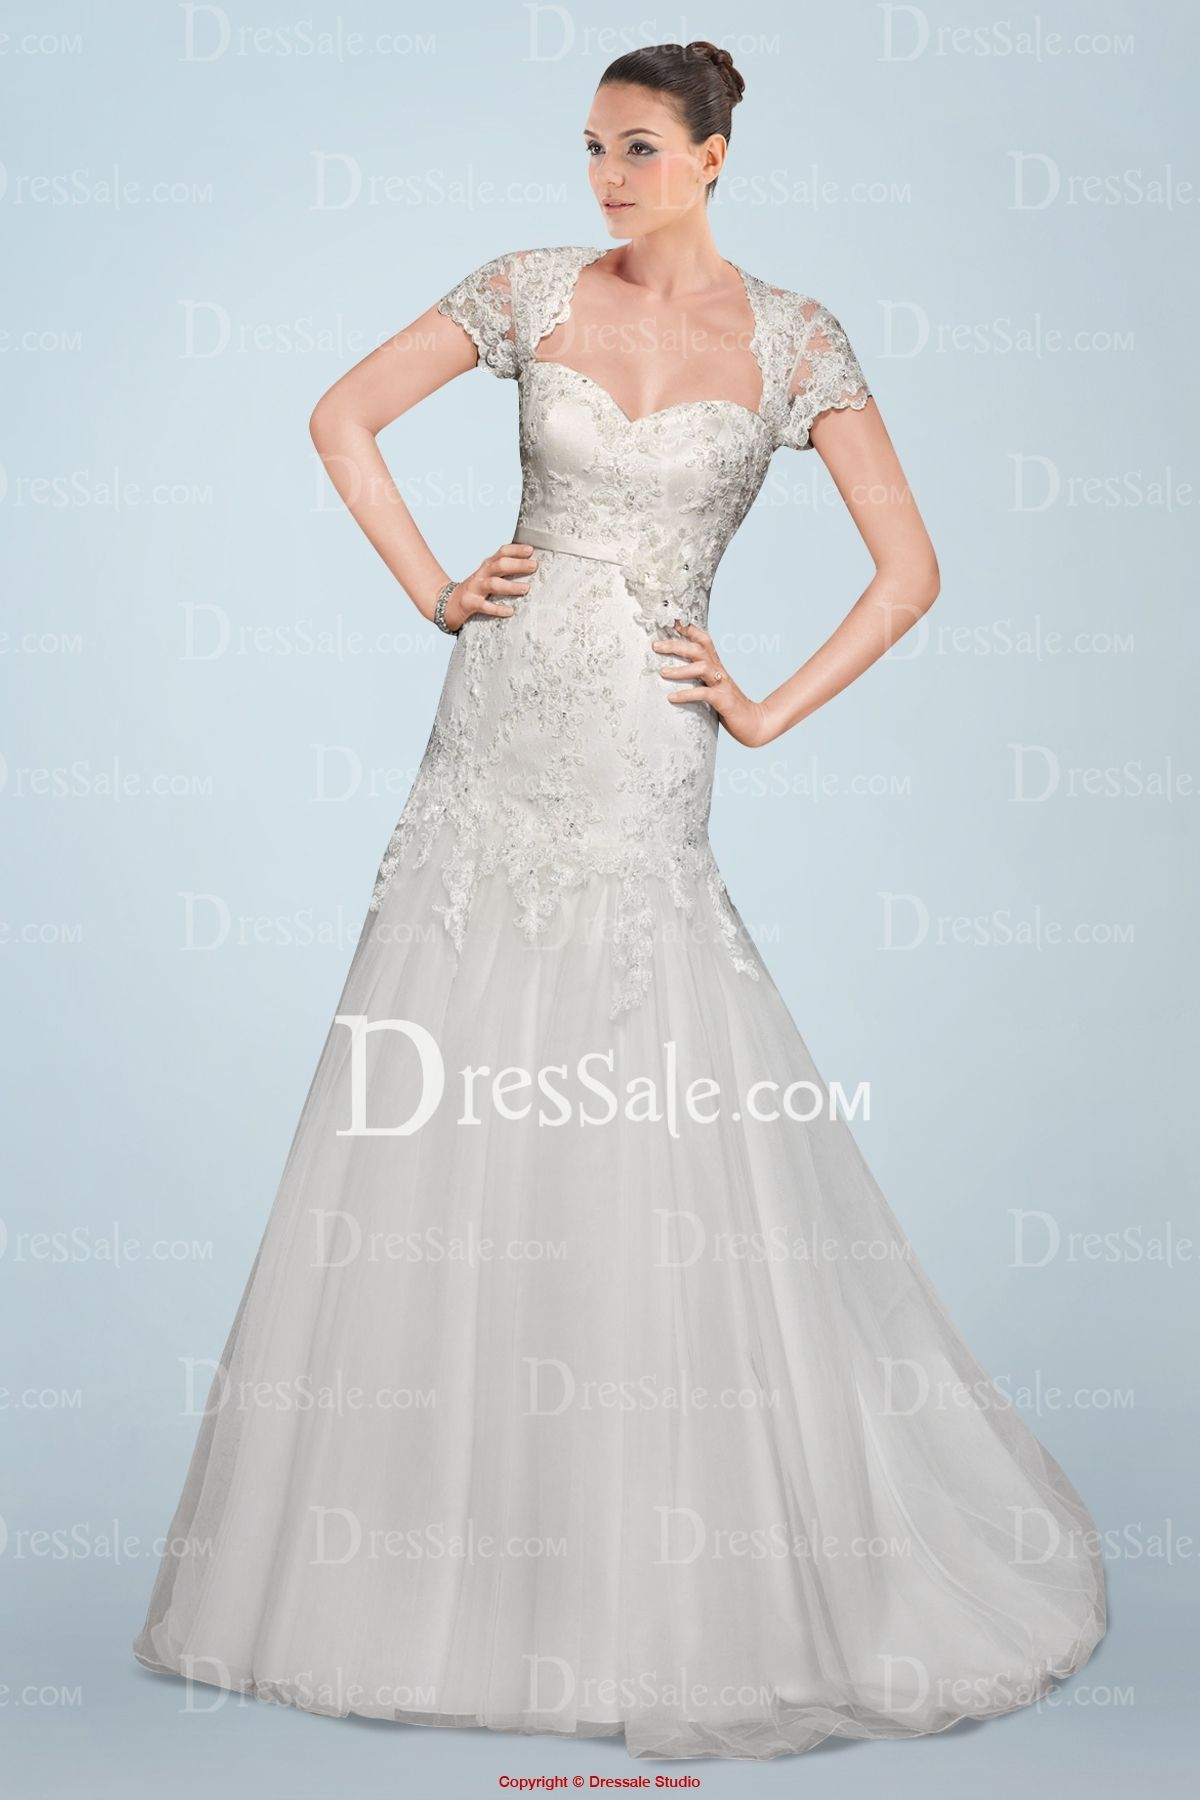 Ravishing short sleeve aline wedding gown featuring beaded lace